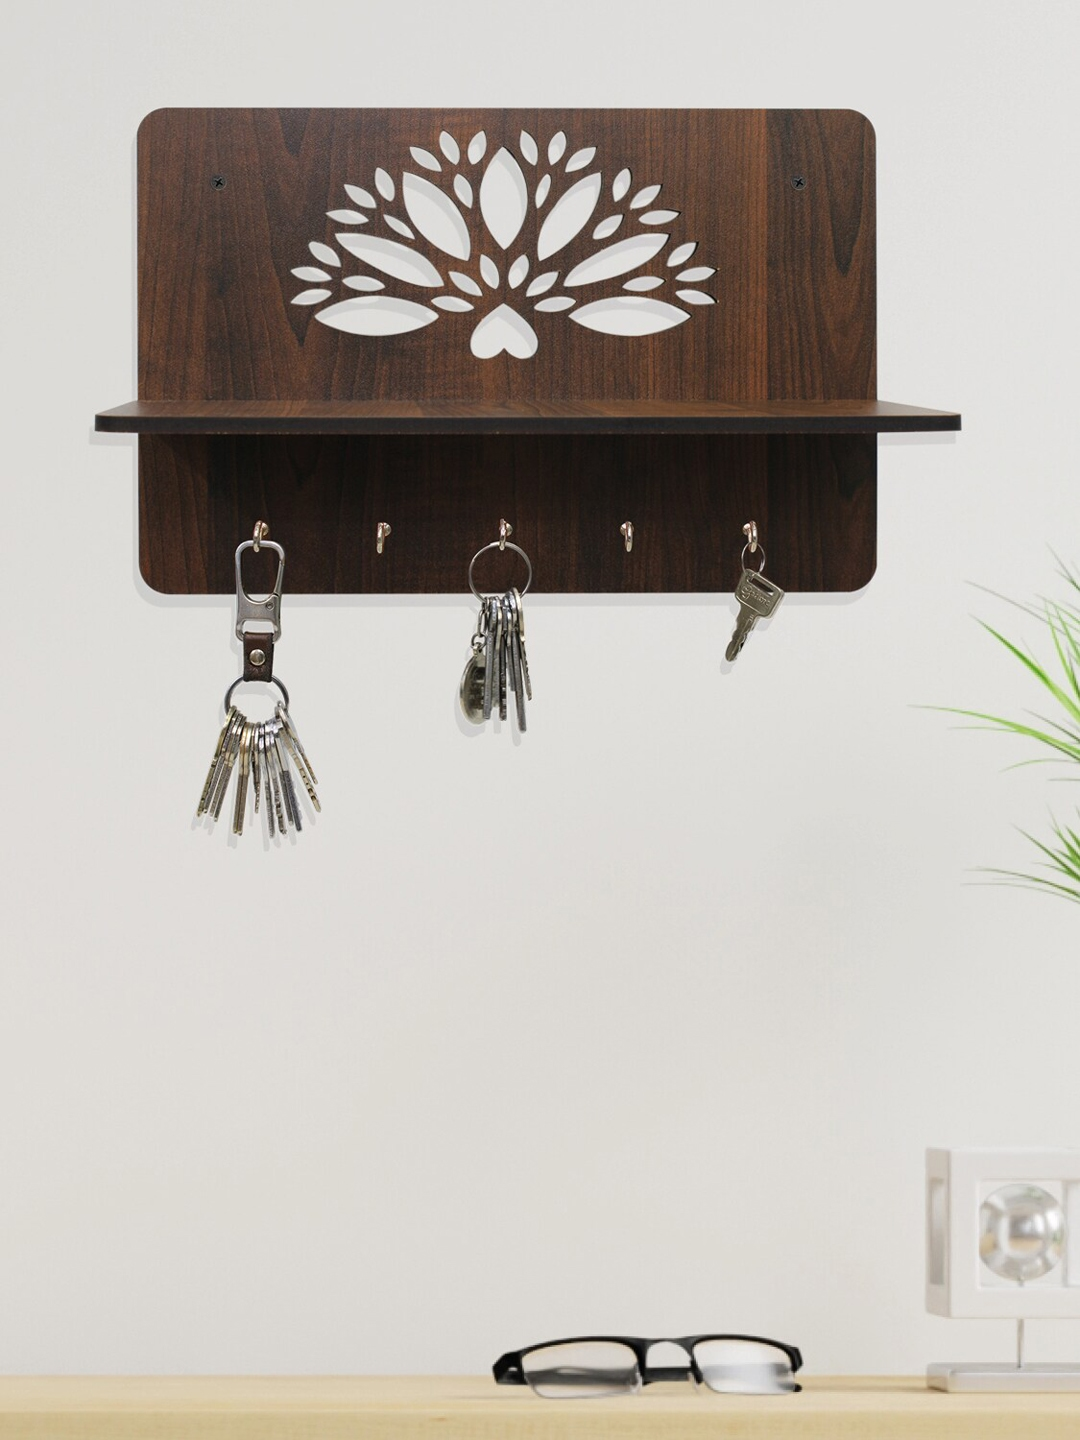 RANDOM Brown Textured MDF Wooden Wall Shelf with Key Holders